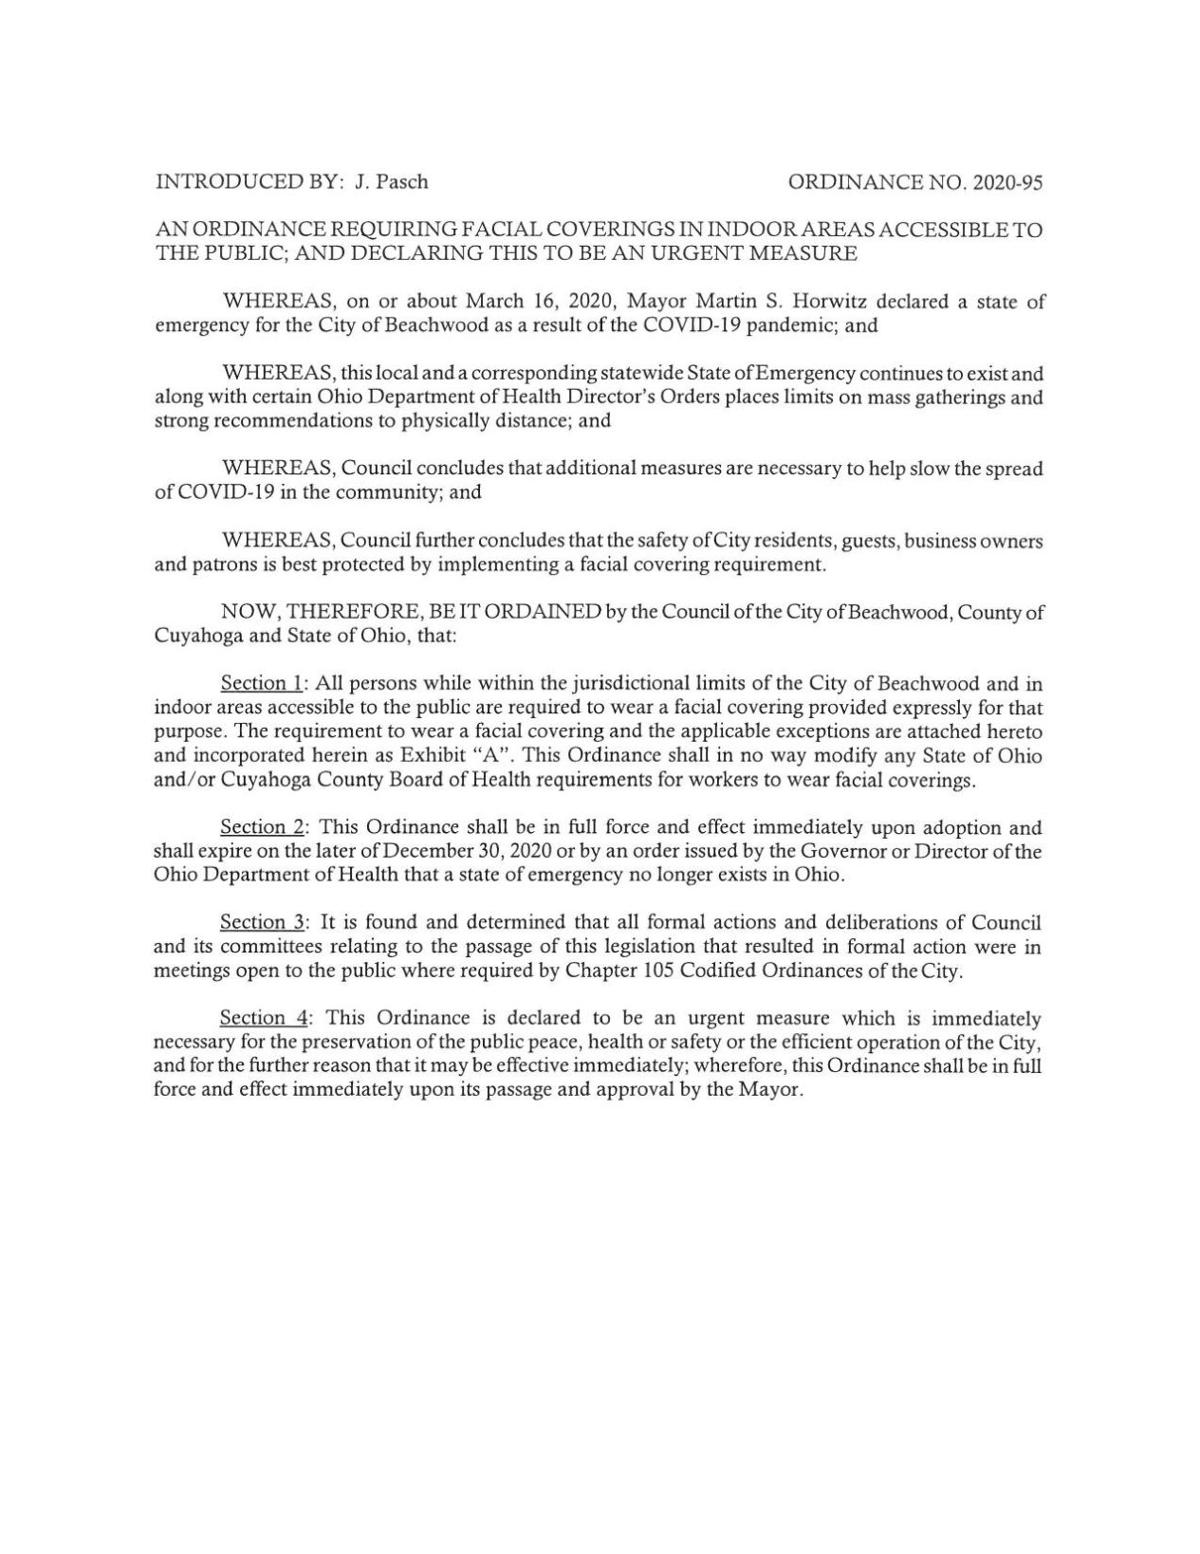 A Beachwood ordinance requiring facial coverings